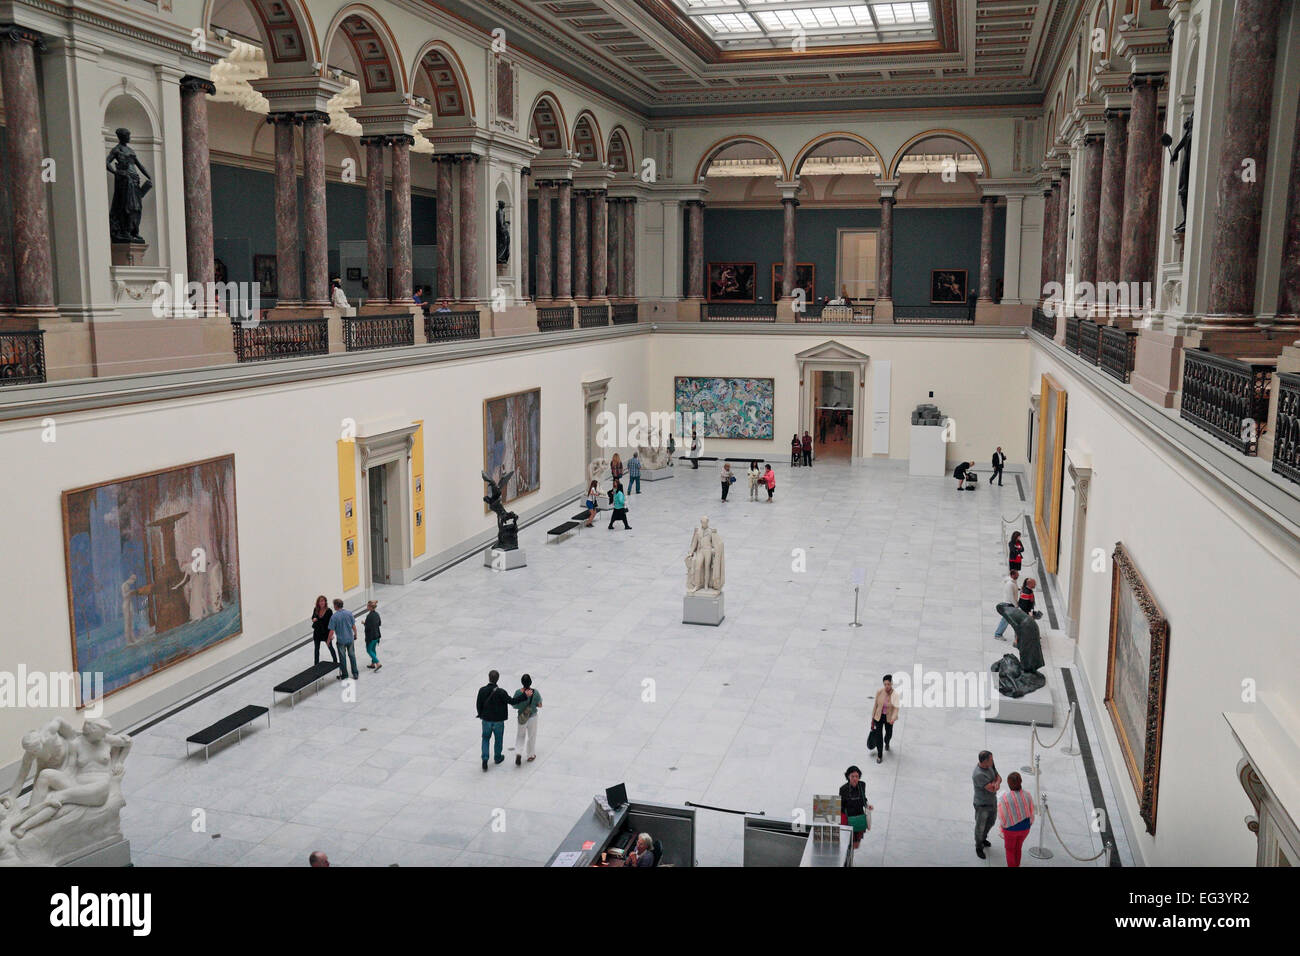 General view of the main hall in the Royal Museums of Fine Arts of Belgium, Brussels, Belgium. - Stock Image